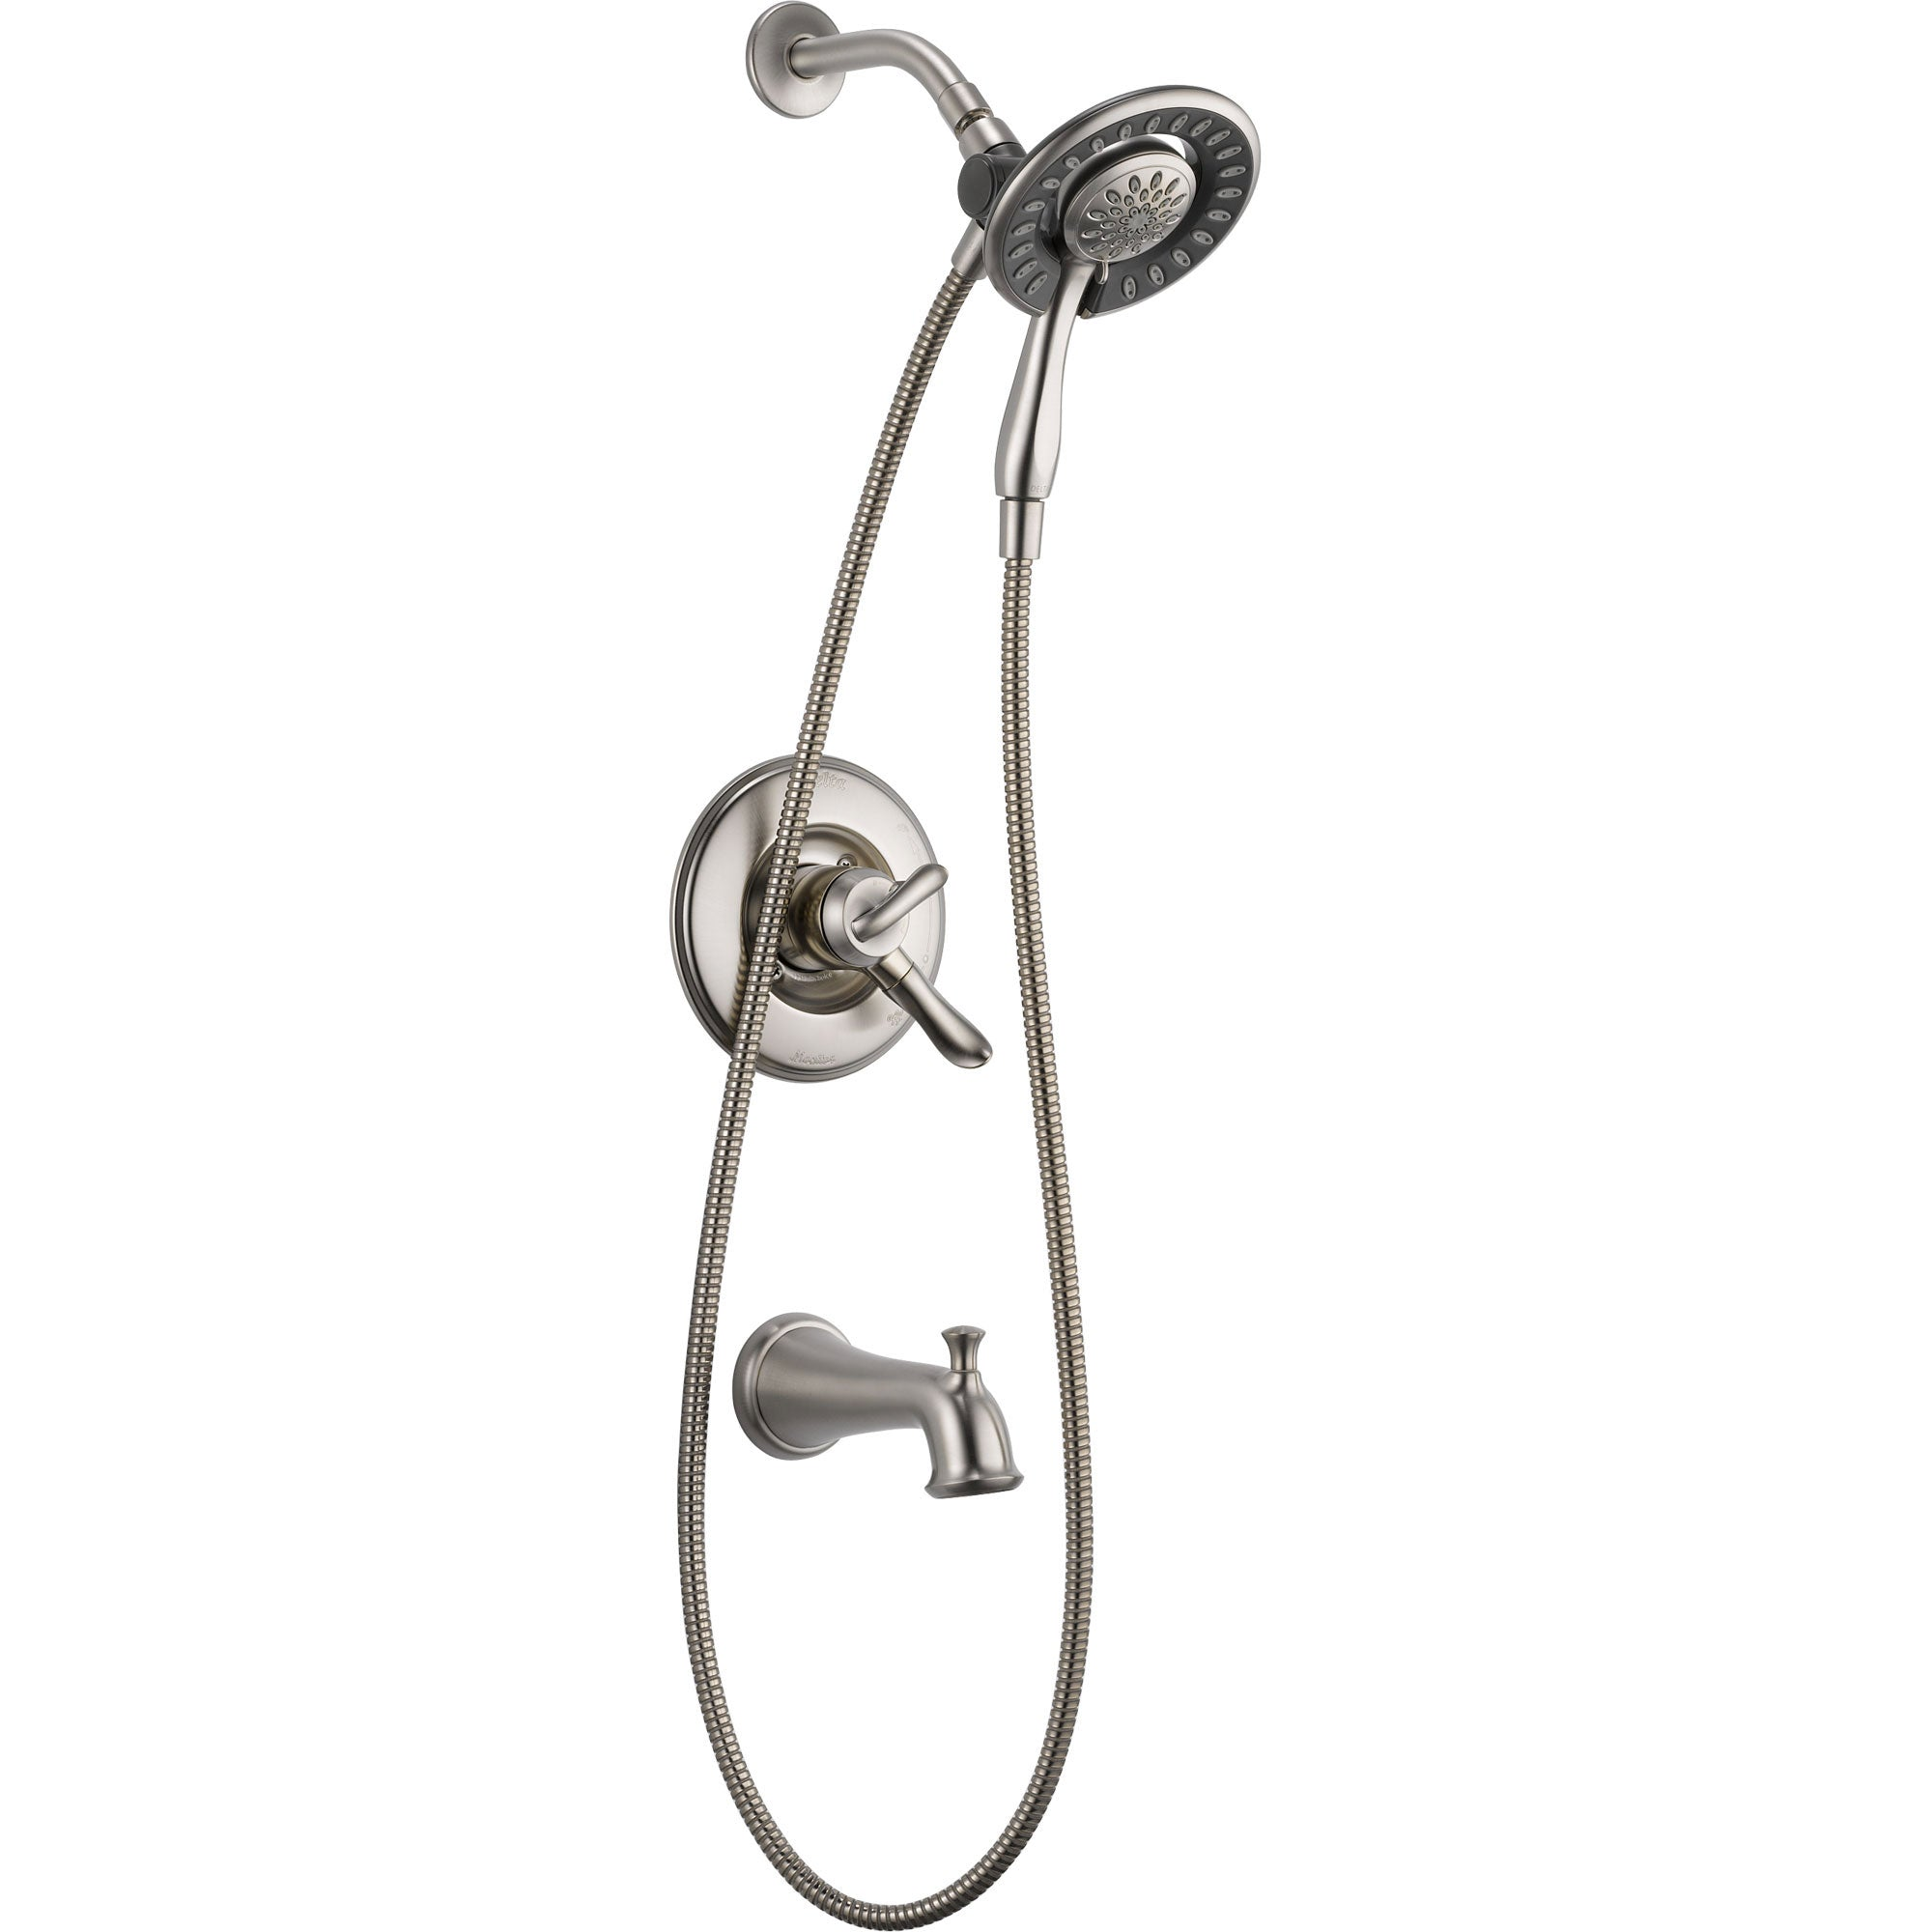 Delta Linden Tub and Shower Stainless Finish Handheld & Shower Head Trim 555620